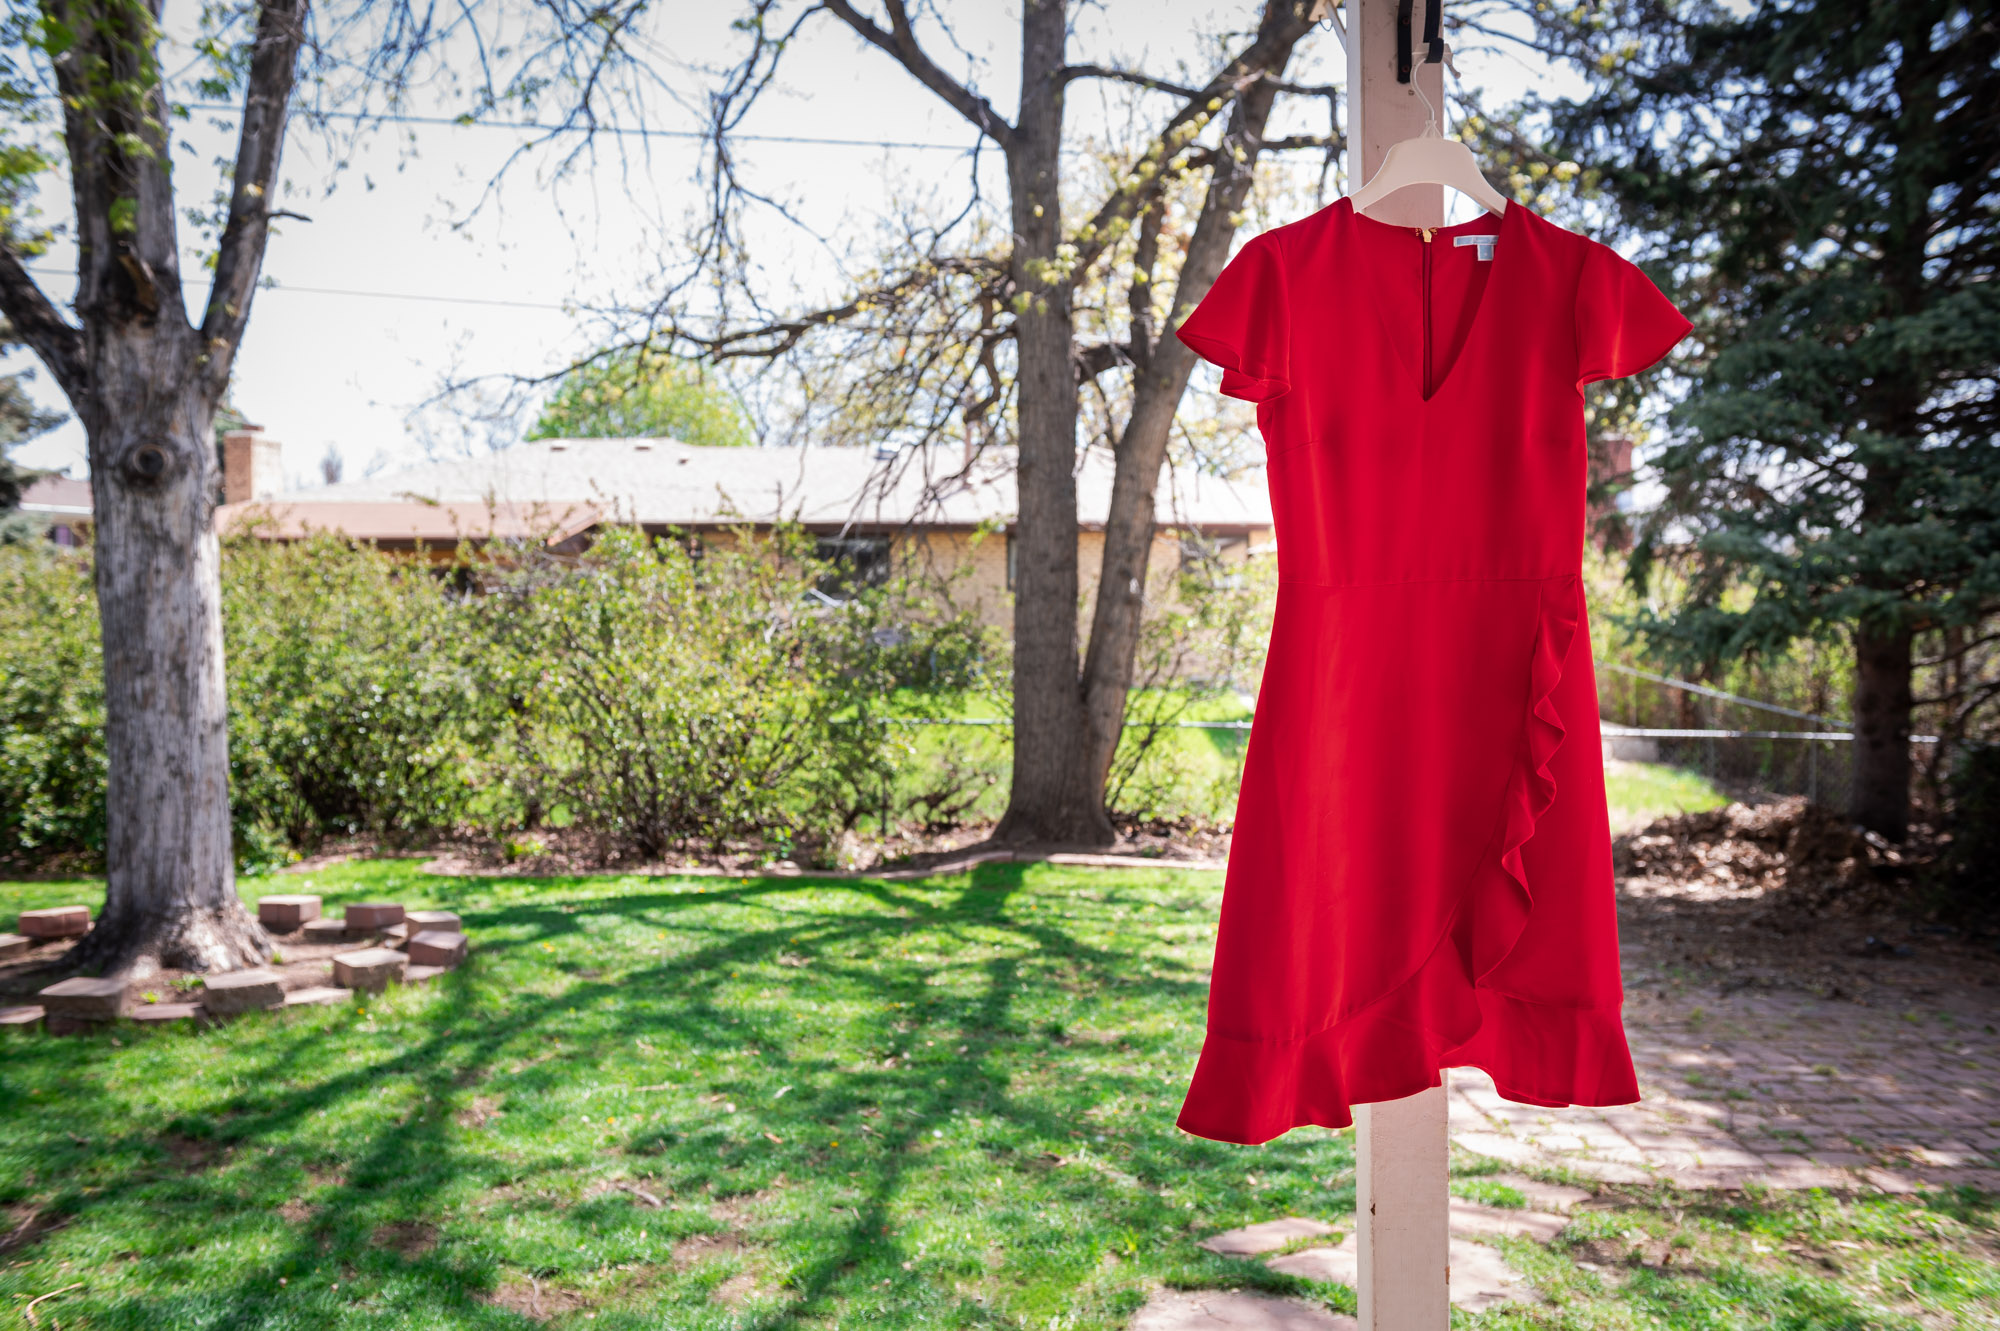 Red Summer dress blowing in the wind while hung up